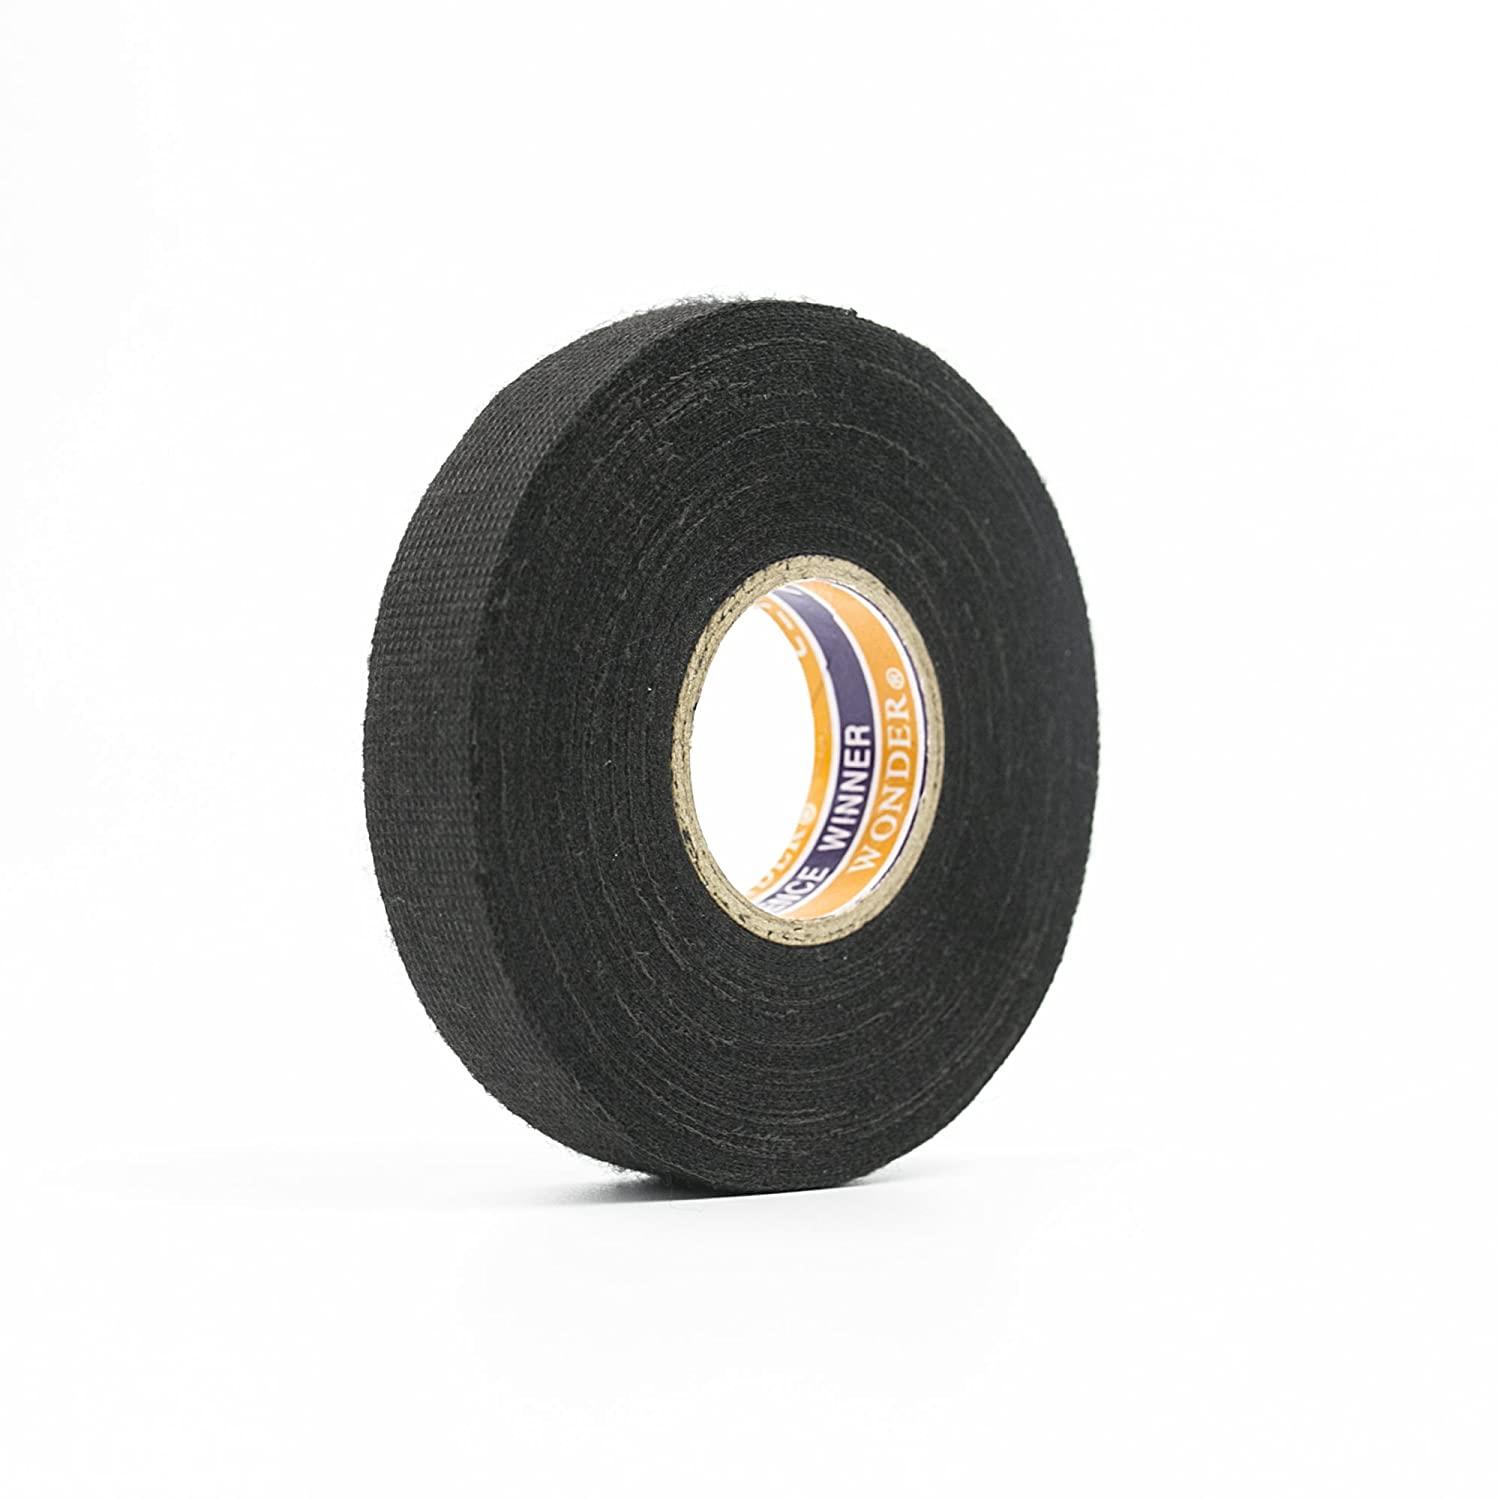 Amazon.com: Black Fuzzy Fleece Interior Wire Loom Harness Tape Car Wire  Harness Tape for Vw, Audi, Mercedes, BMW 19 Mm X 15 Meters(set of 2):  Office ...